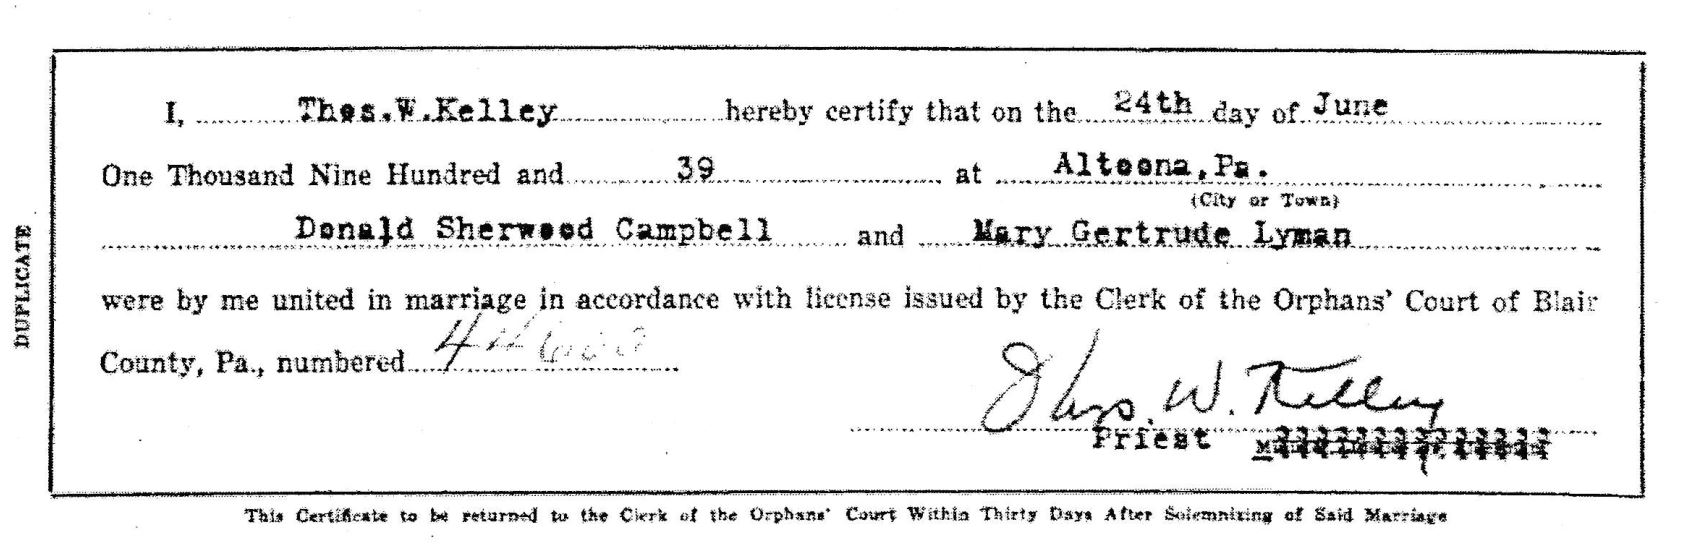 Marriage certificate for Donald Campbell and Mary Gertrude Lyman.